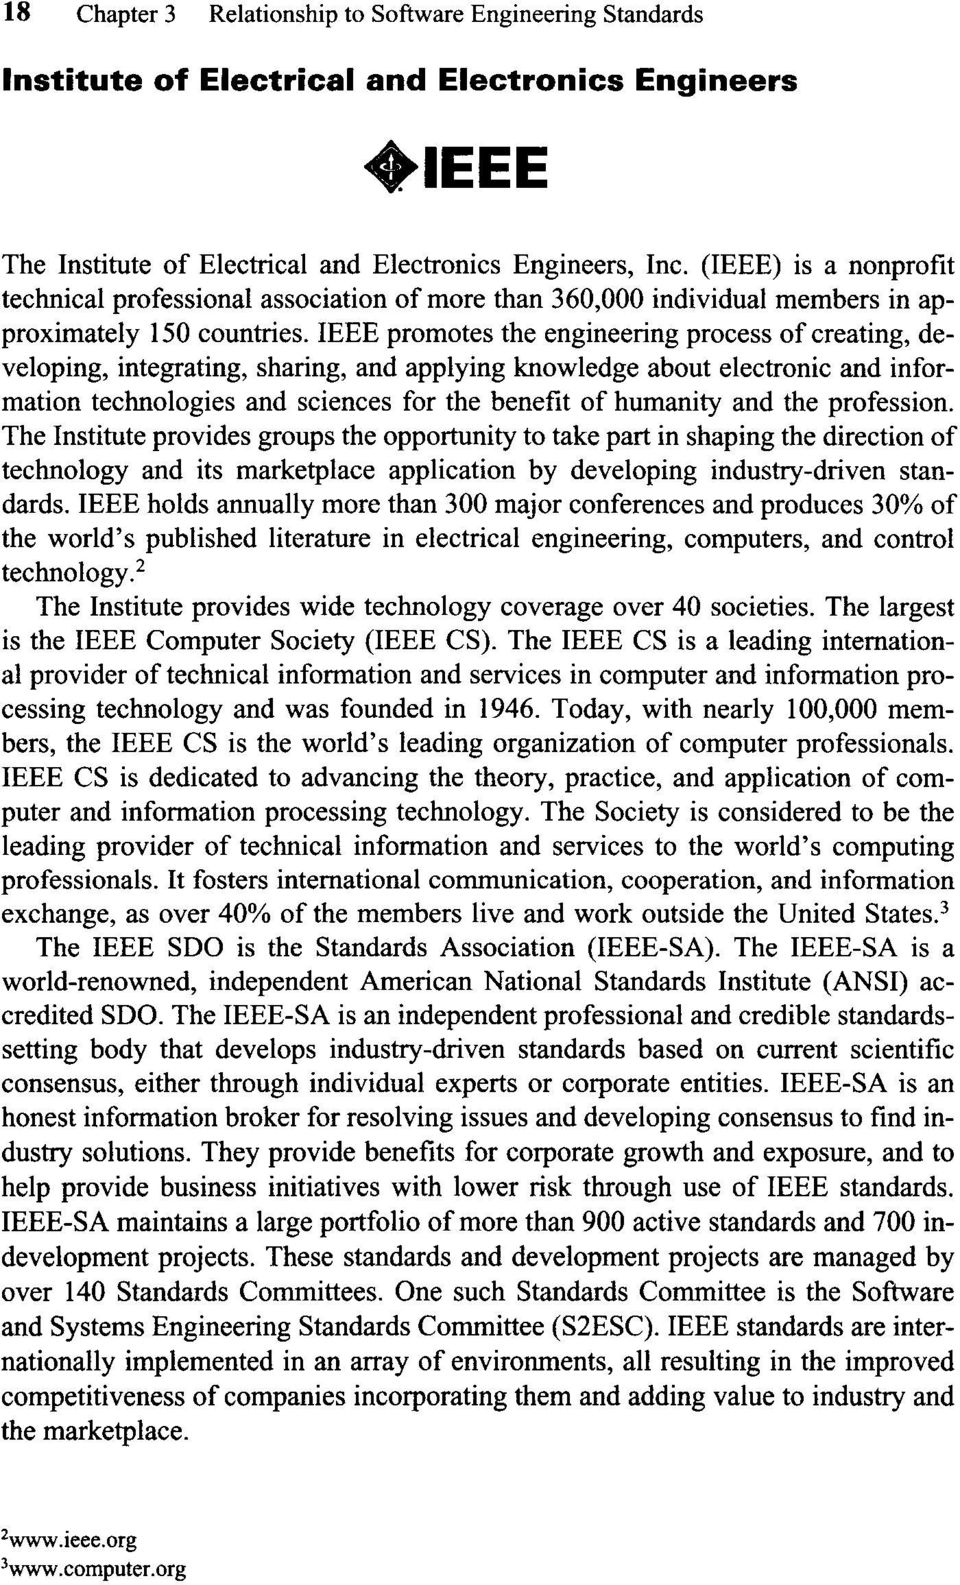 IEEE promotes the engineering process of creating, developing, integrating, sharing, and applying knowledge about electronic and information technologies and sciences for the benefit of humanity and